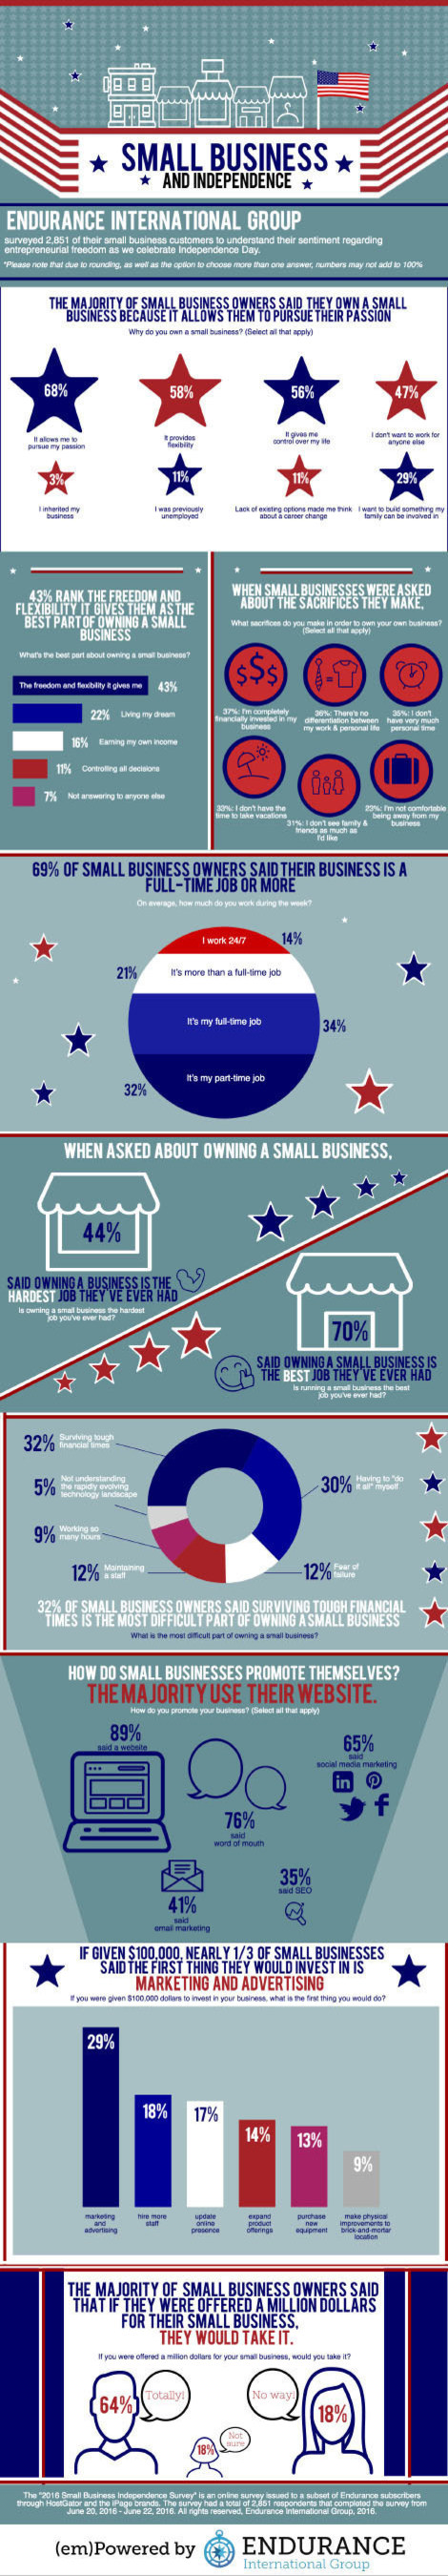 Small business independence infographic